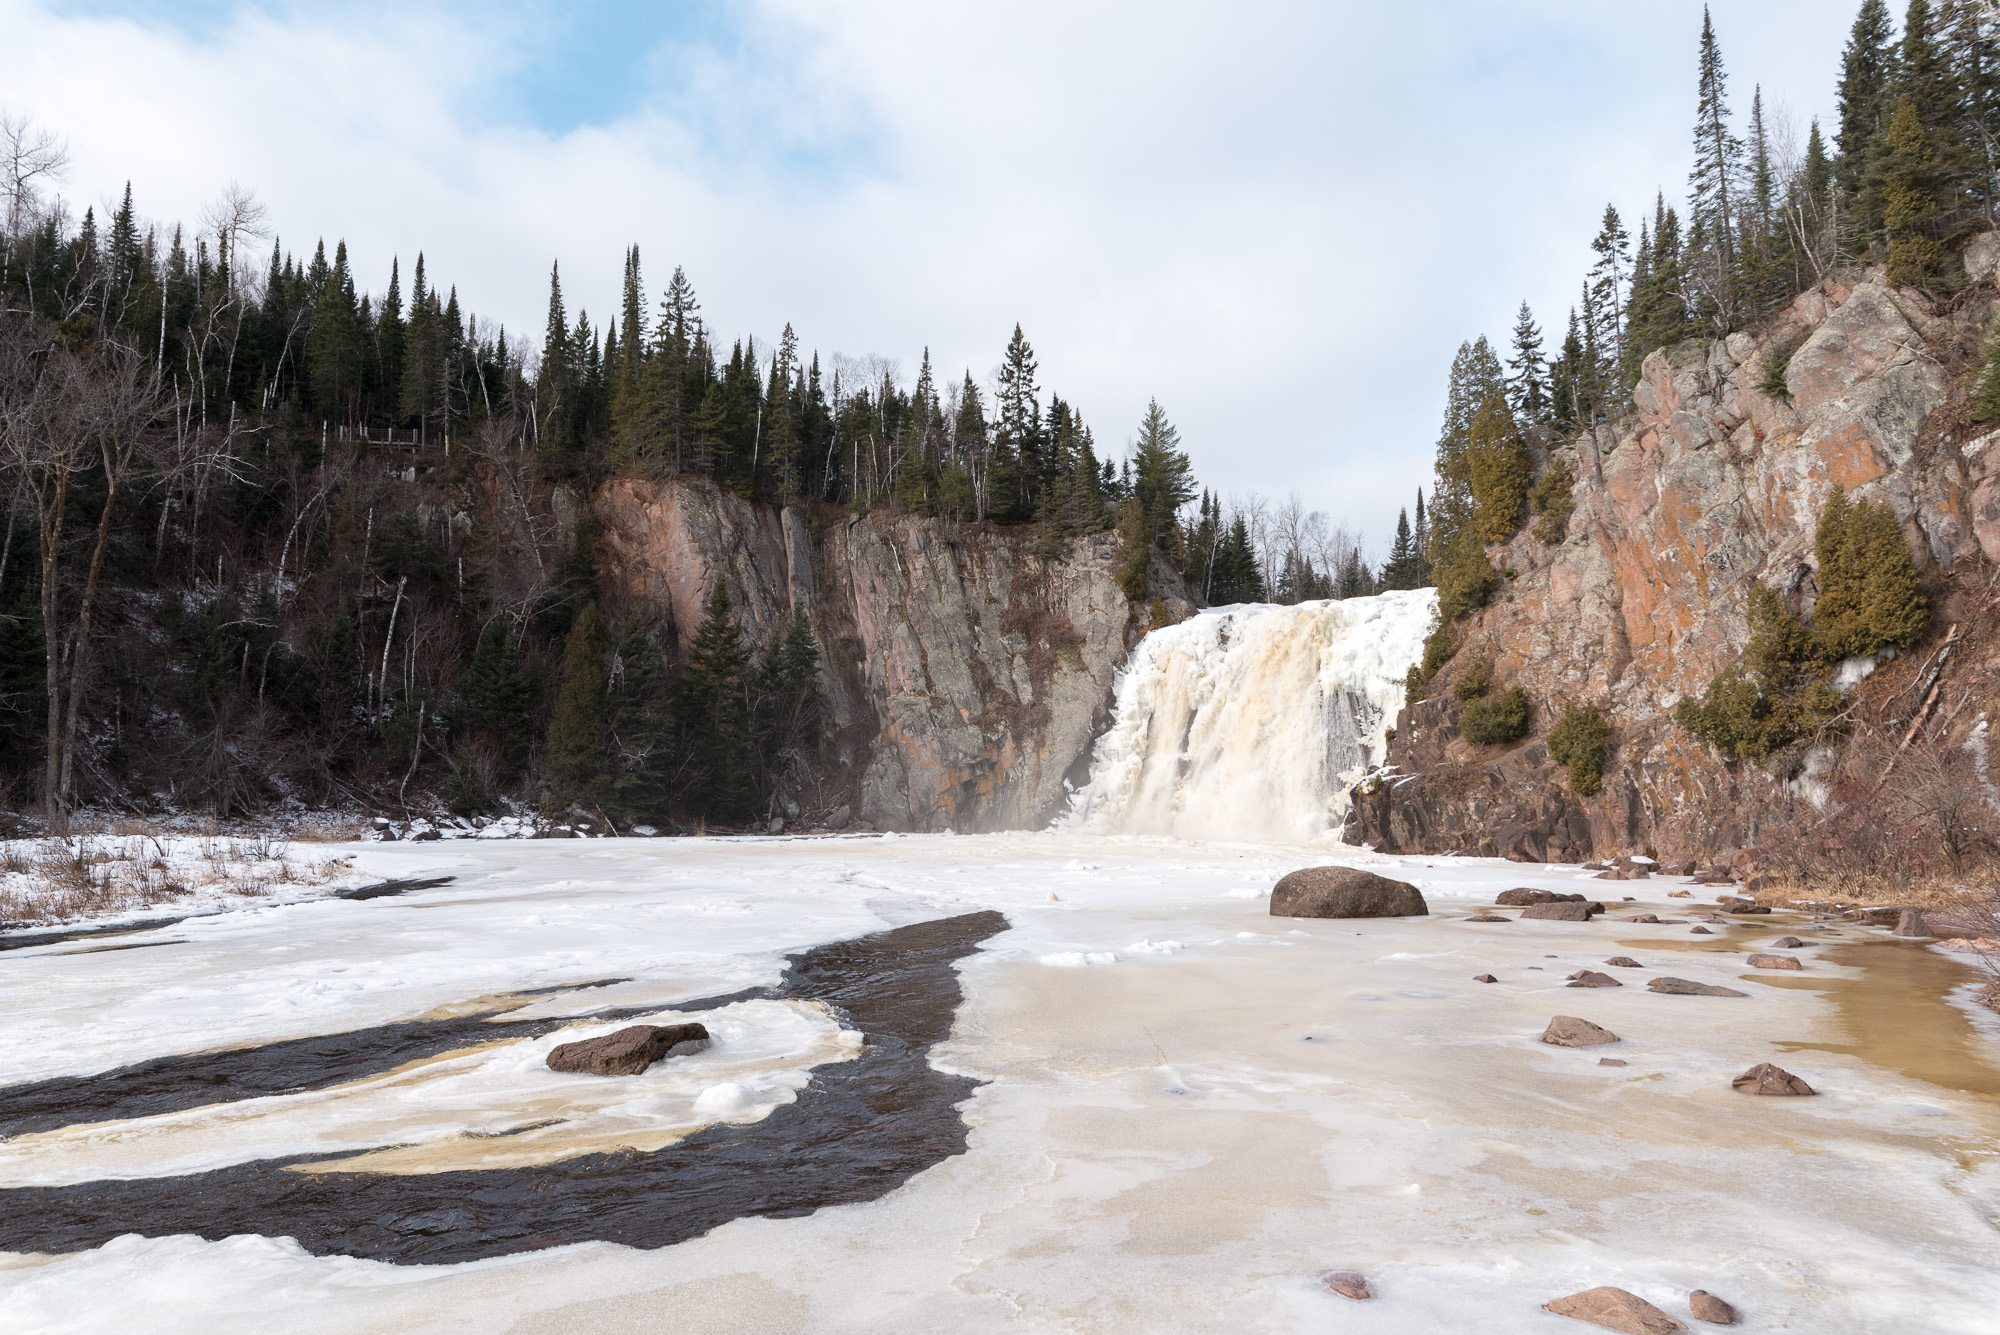 A photo of High Falls taken from the pool at it's base. The water is partially frozen over.